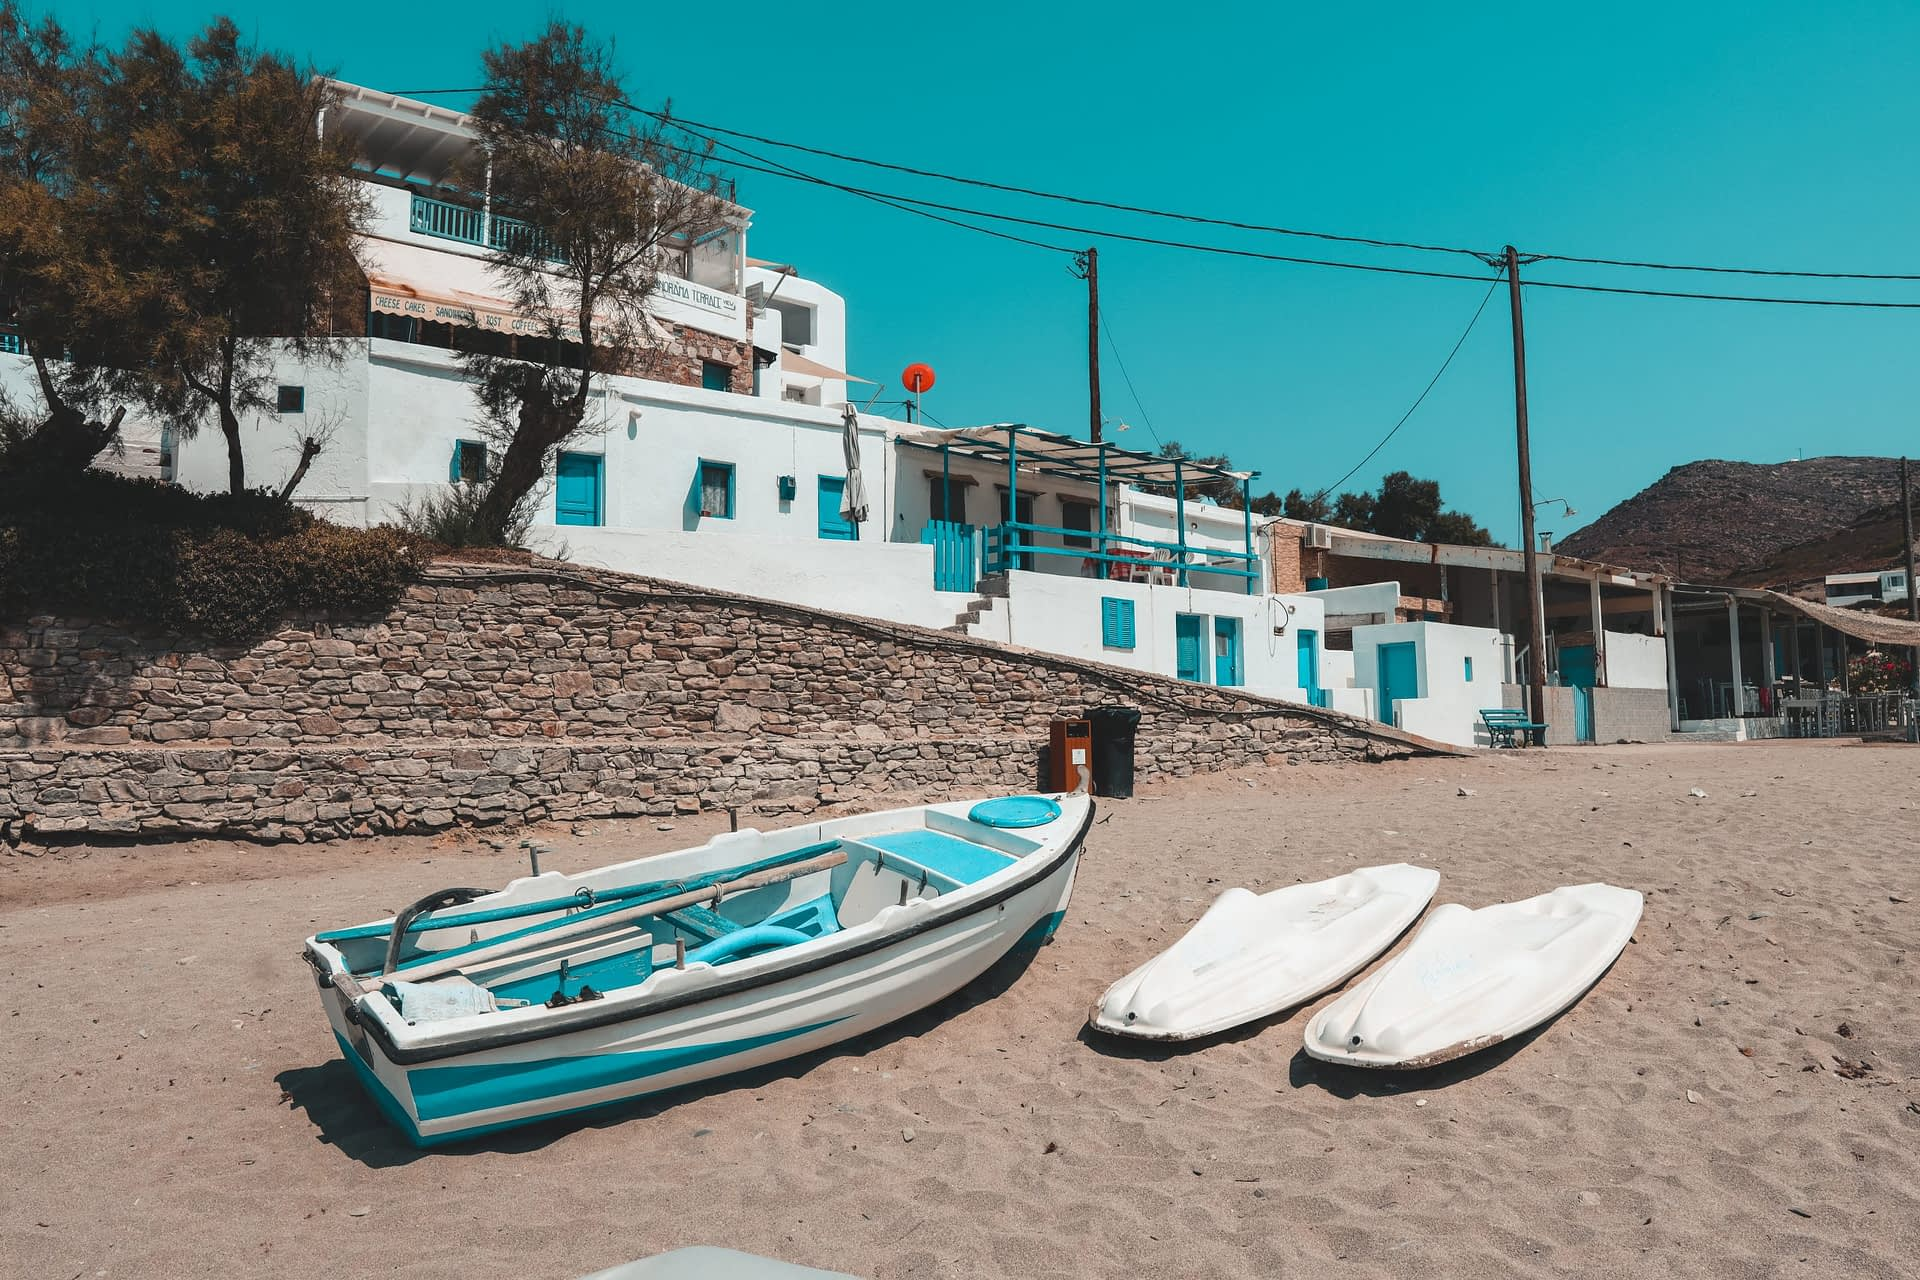 Folegandros boats on a beach. What to do in Folegandros